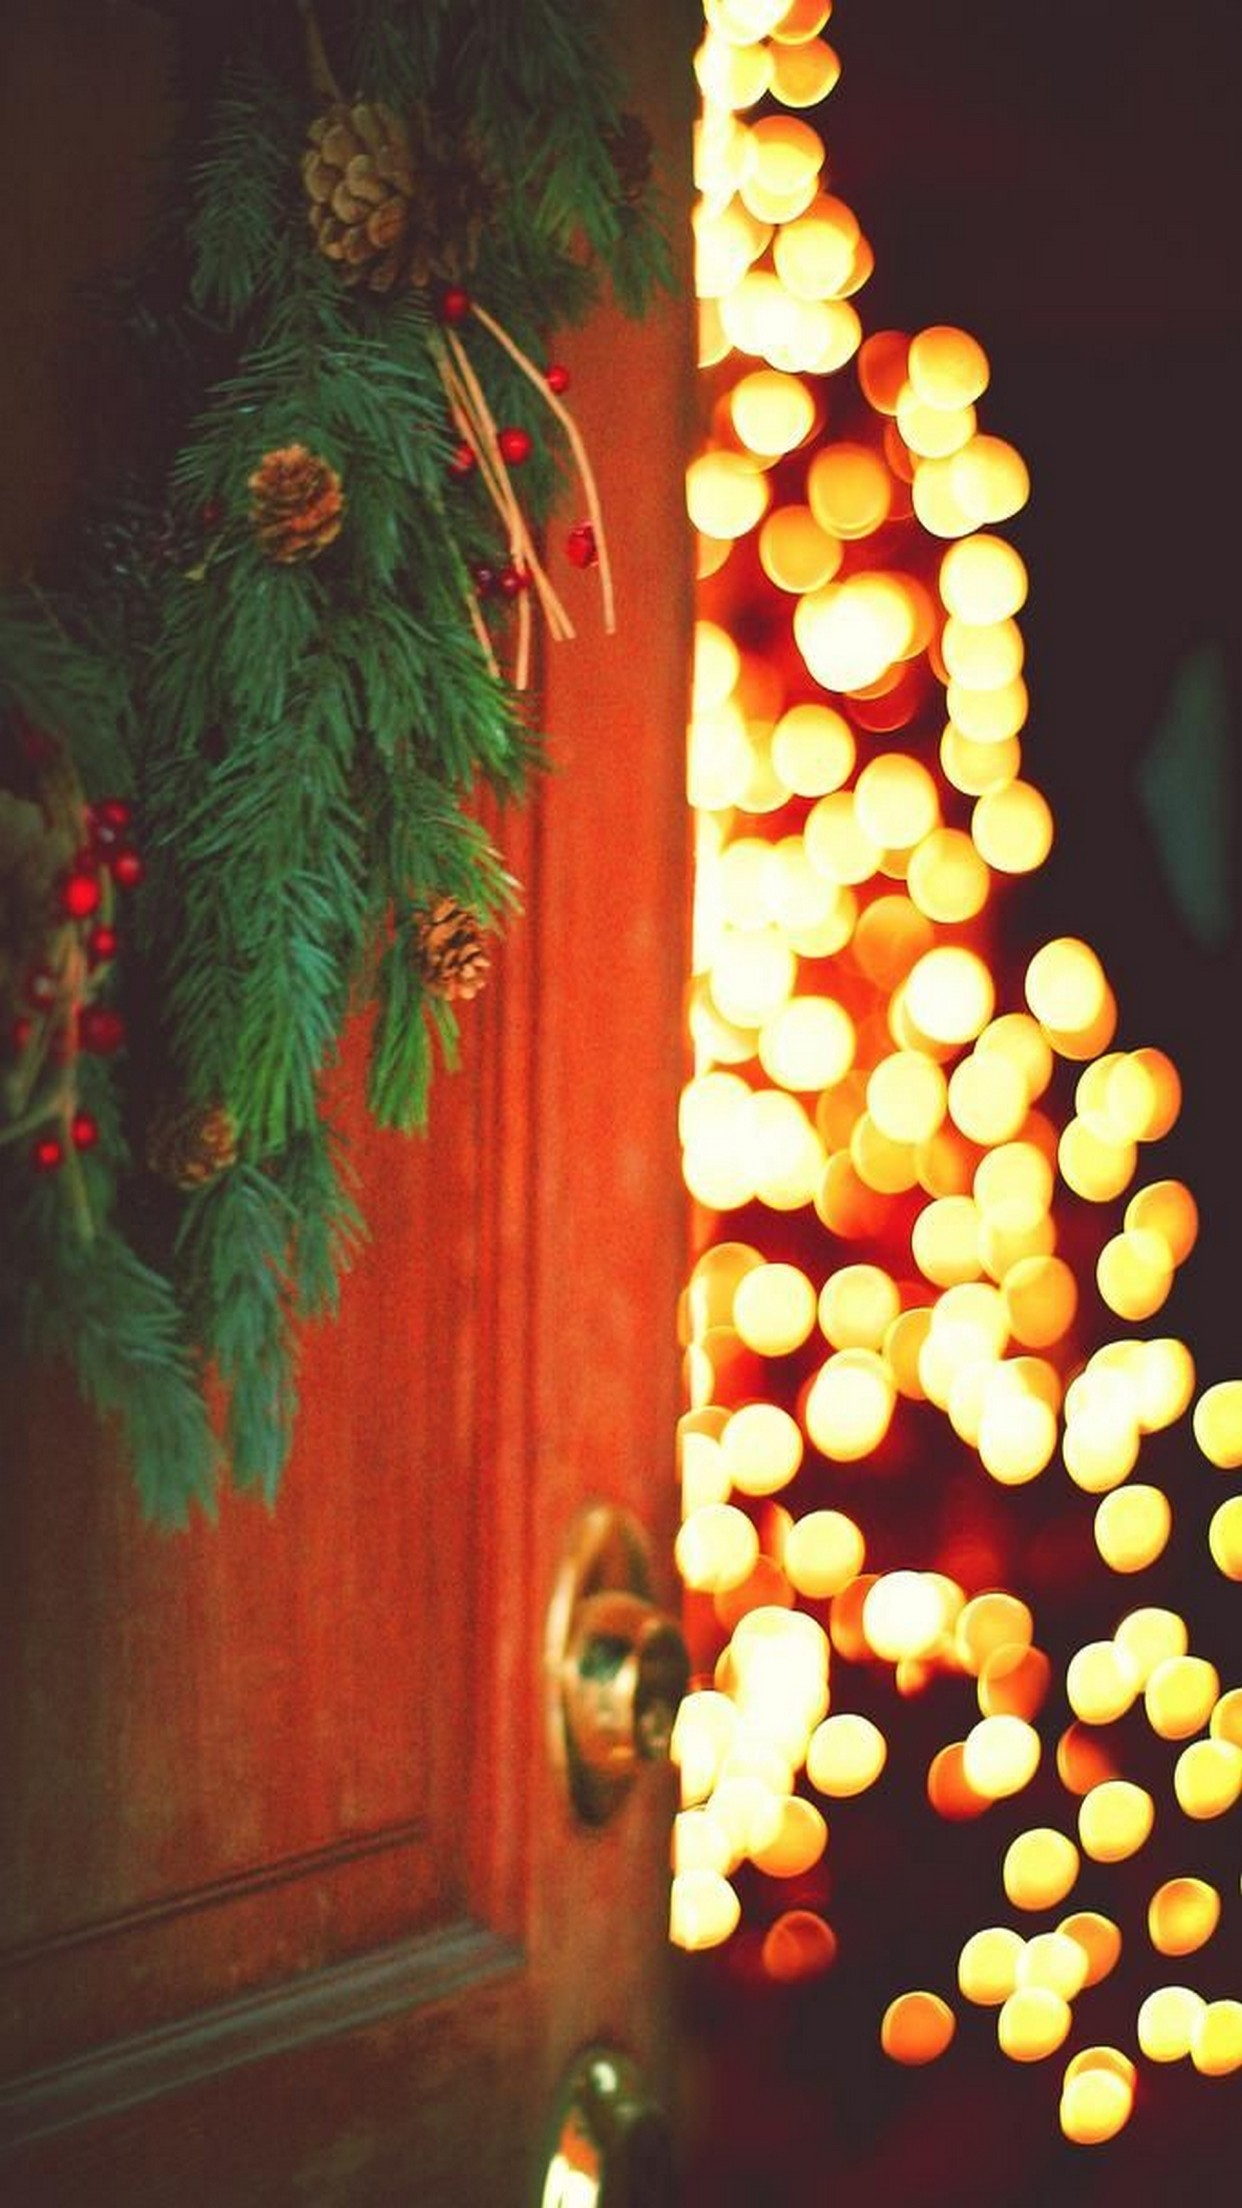 Polka Dots Wallpaper For Iphone Christmas Wallpaper Tumblr 183 ① Download Free Amazing